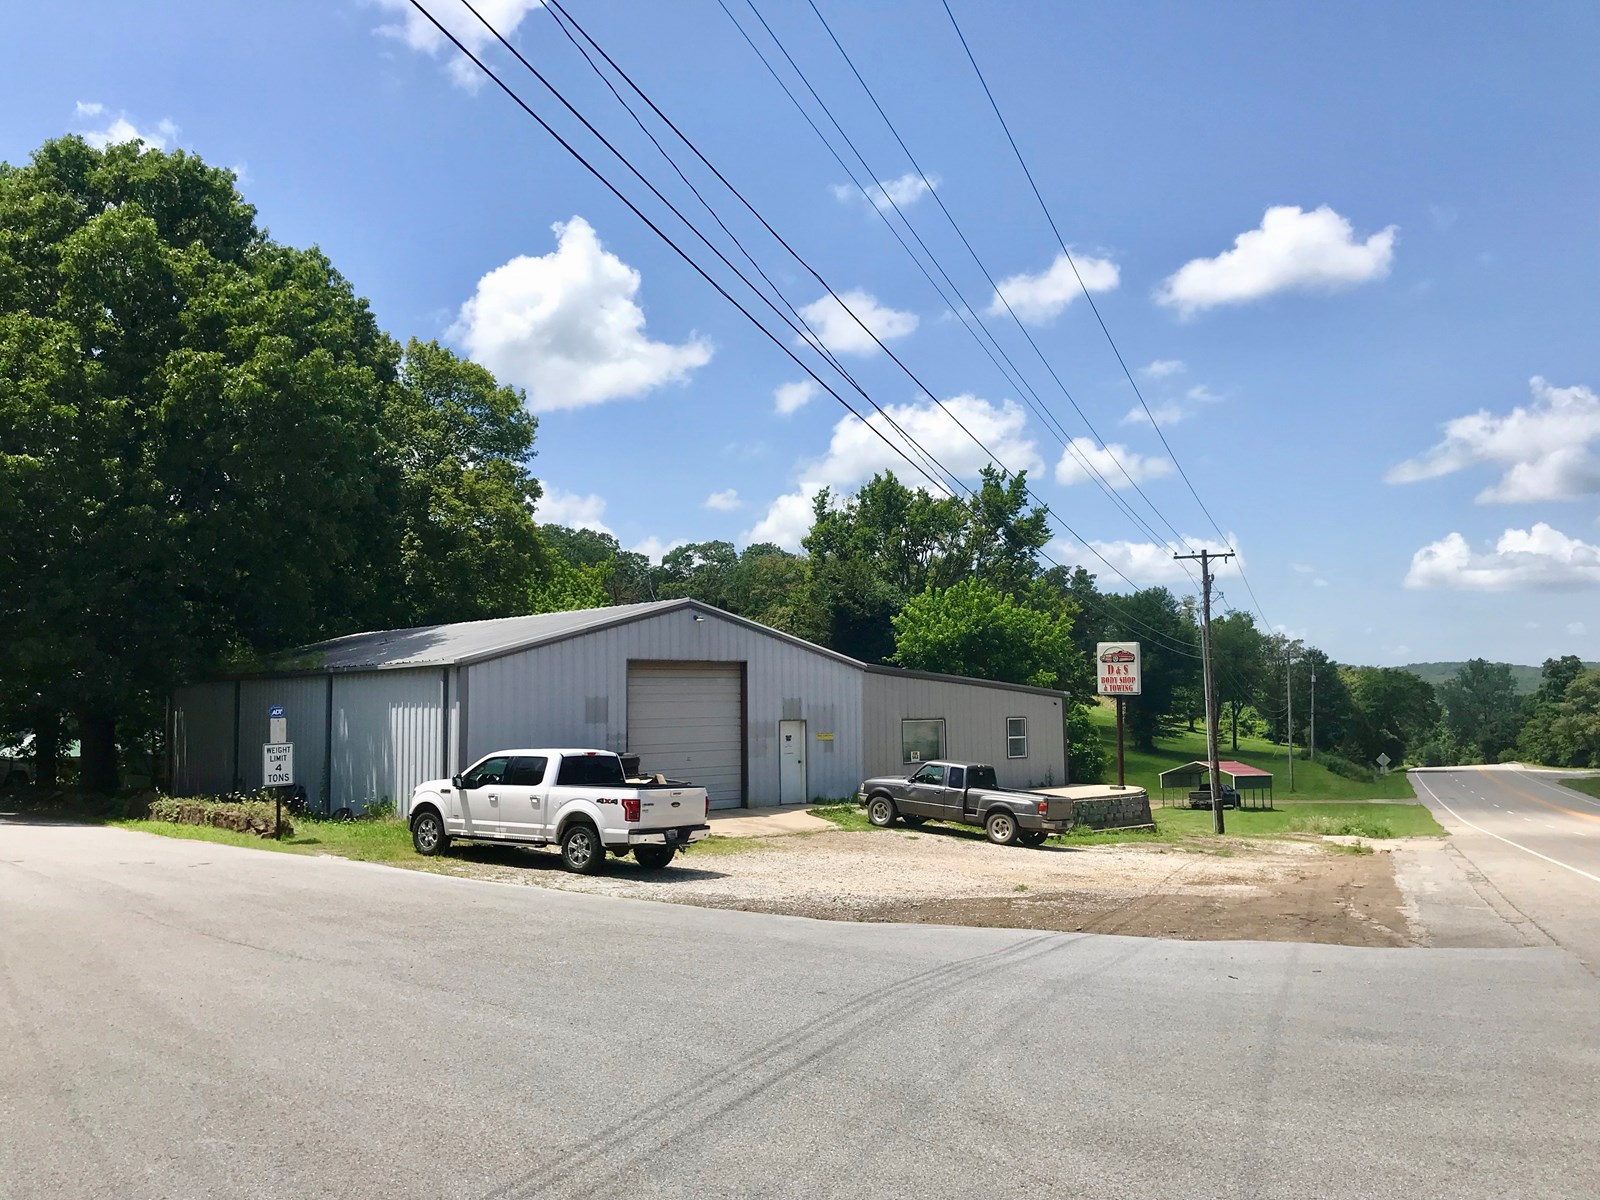 NWA Commercial Property For Sale in Winslow, AR